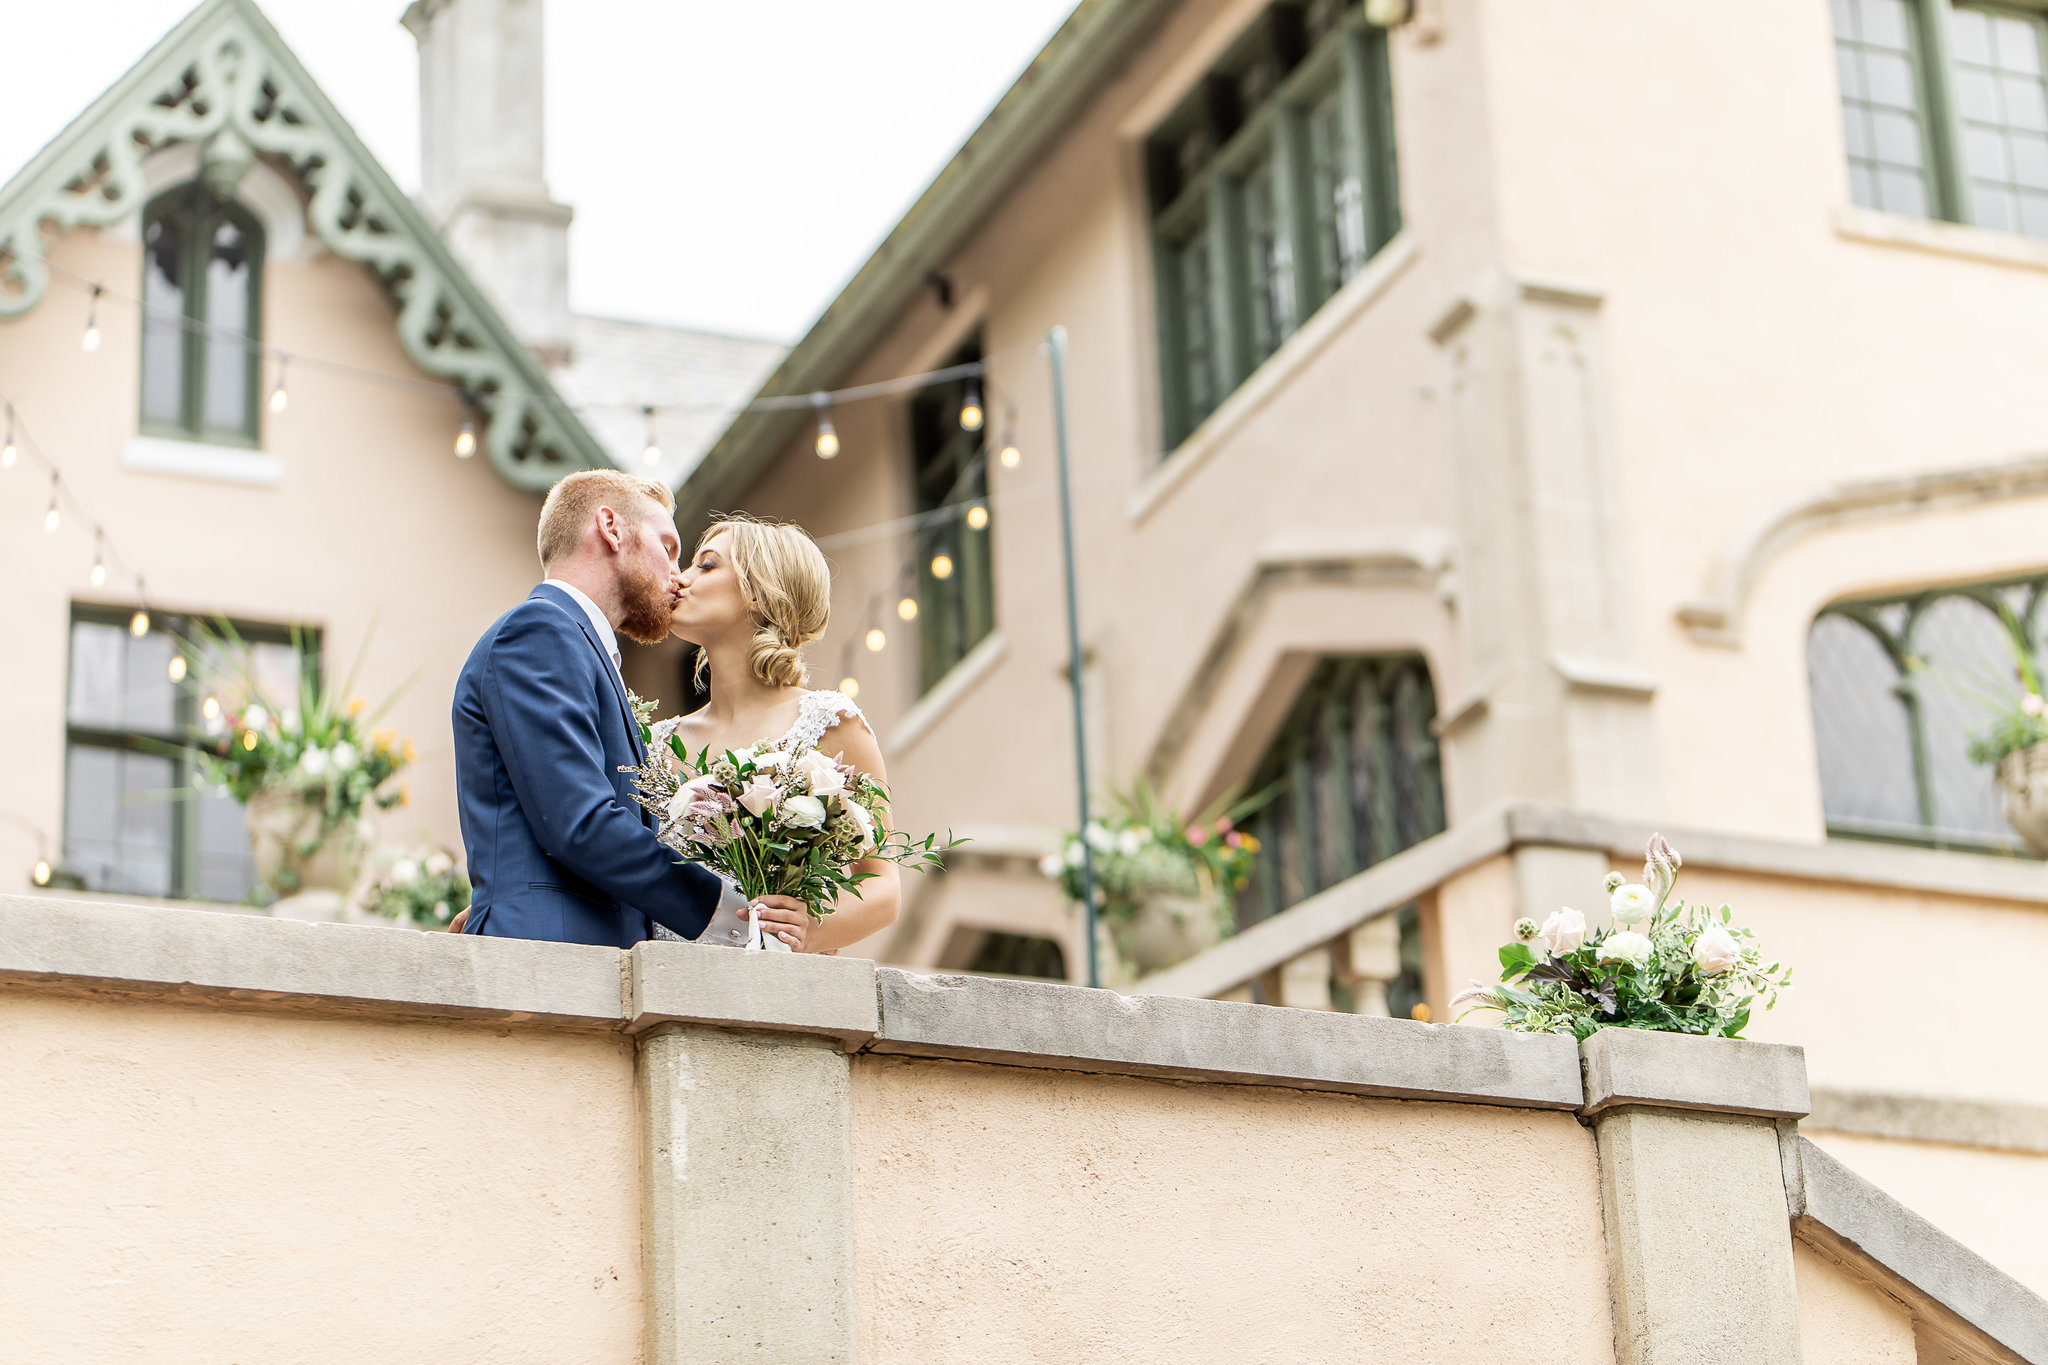 FowlerHouseBalconyCloseupWedding.jpg